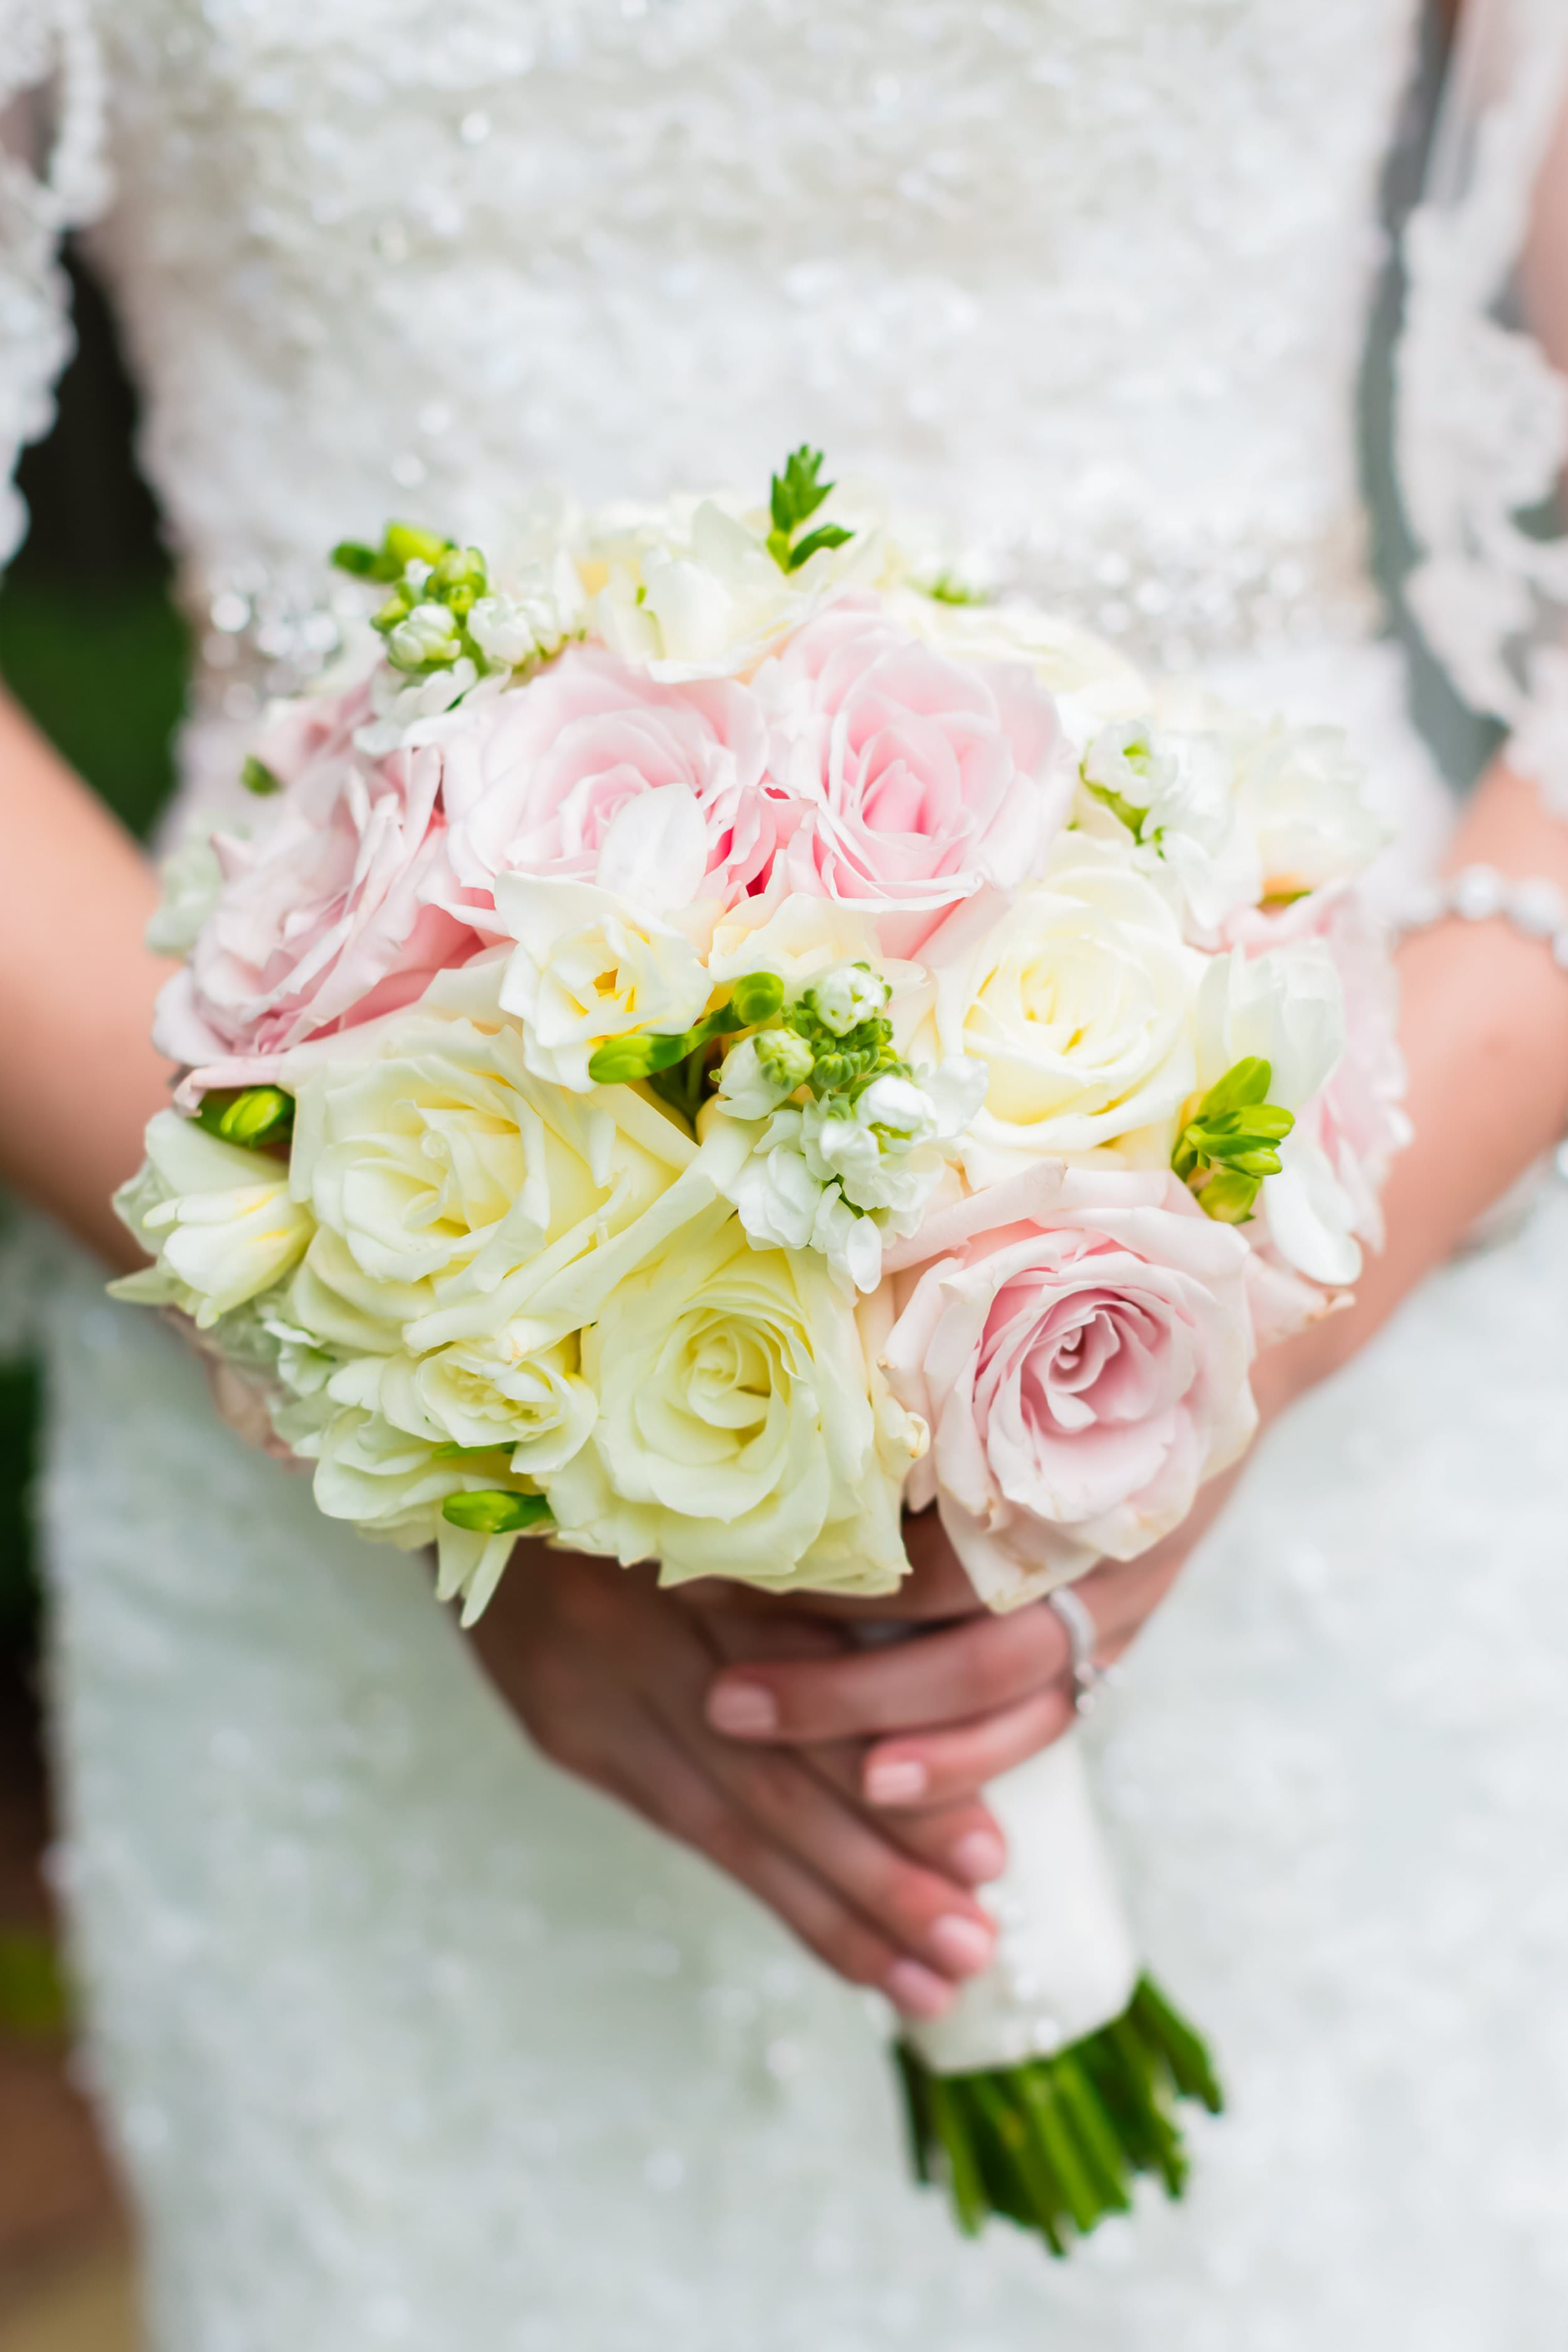 Melissa's pink and white bridal bouquet was designed by  Atlanta florist Unique Floral Creations . It brought a classic touch of color to her wedding design. To view more photos from Ben and Melissa's  Country Club of the South wedding, click here.